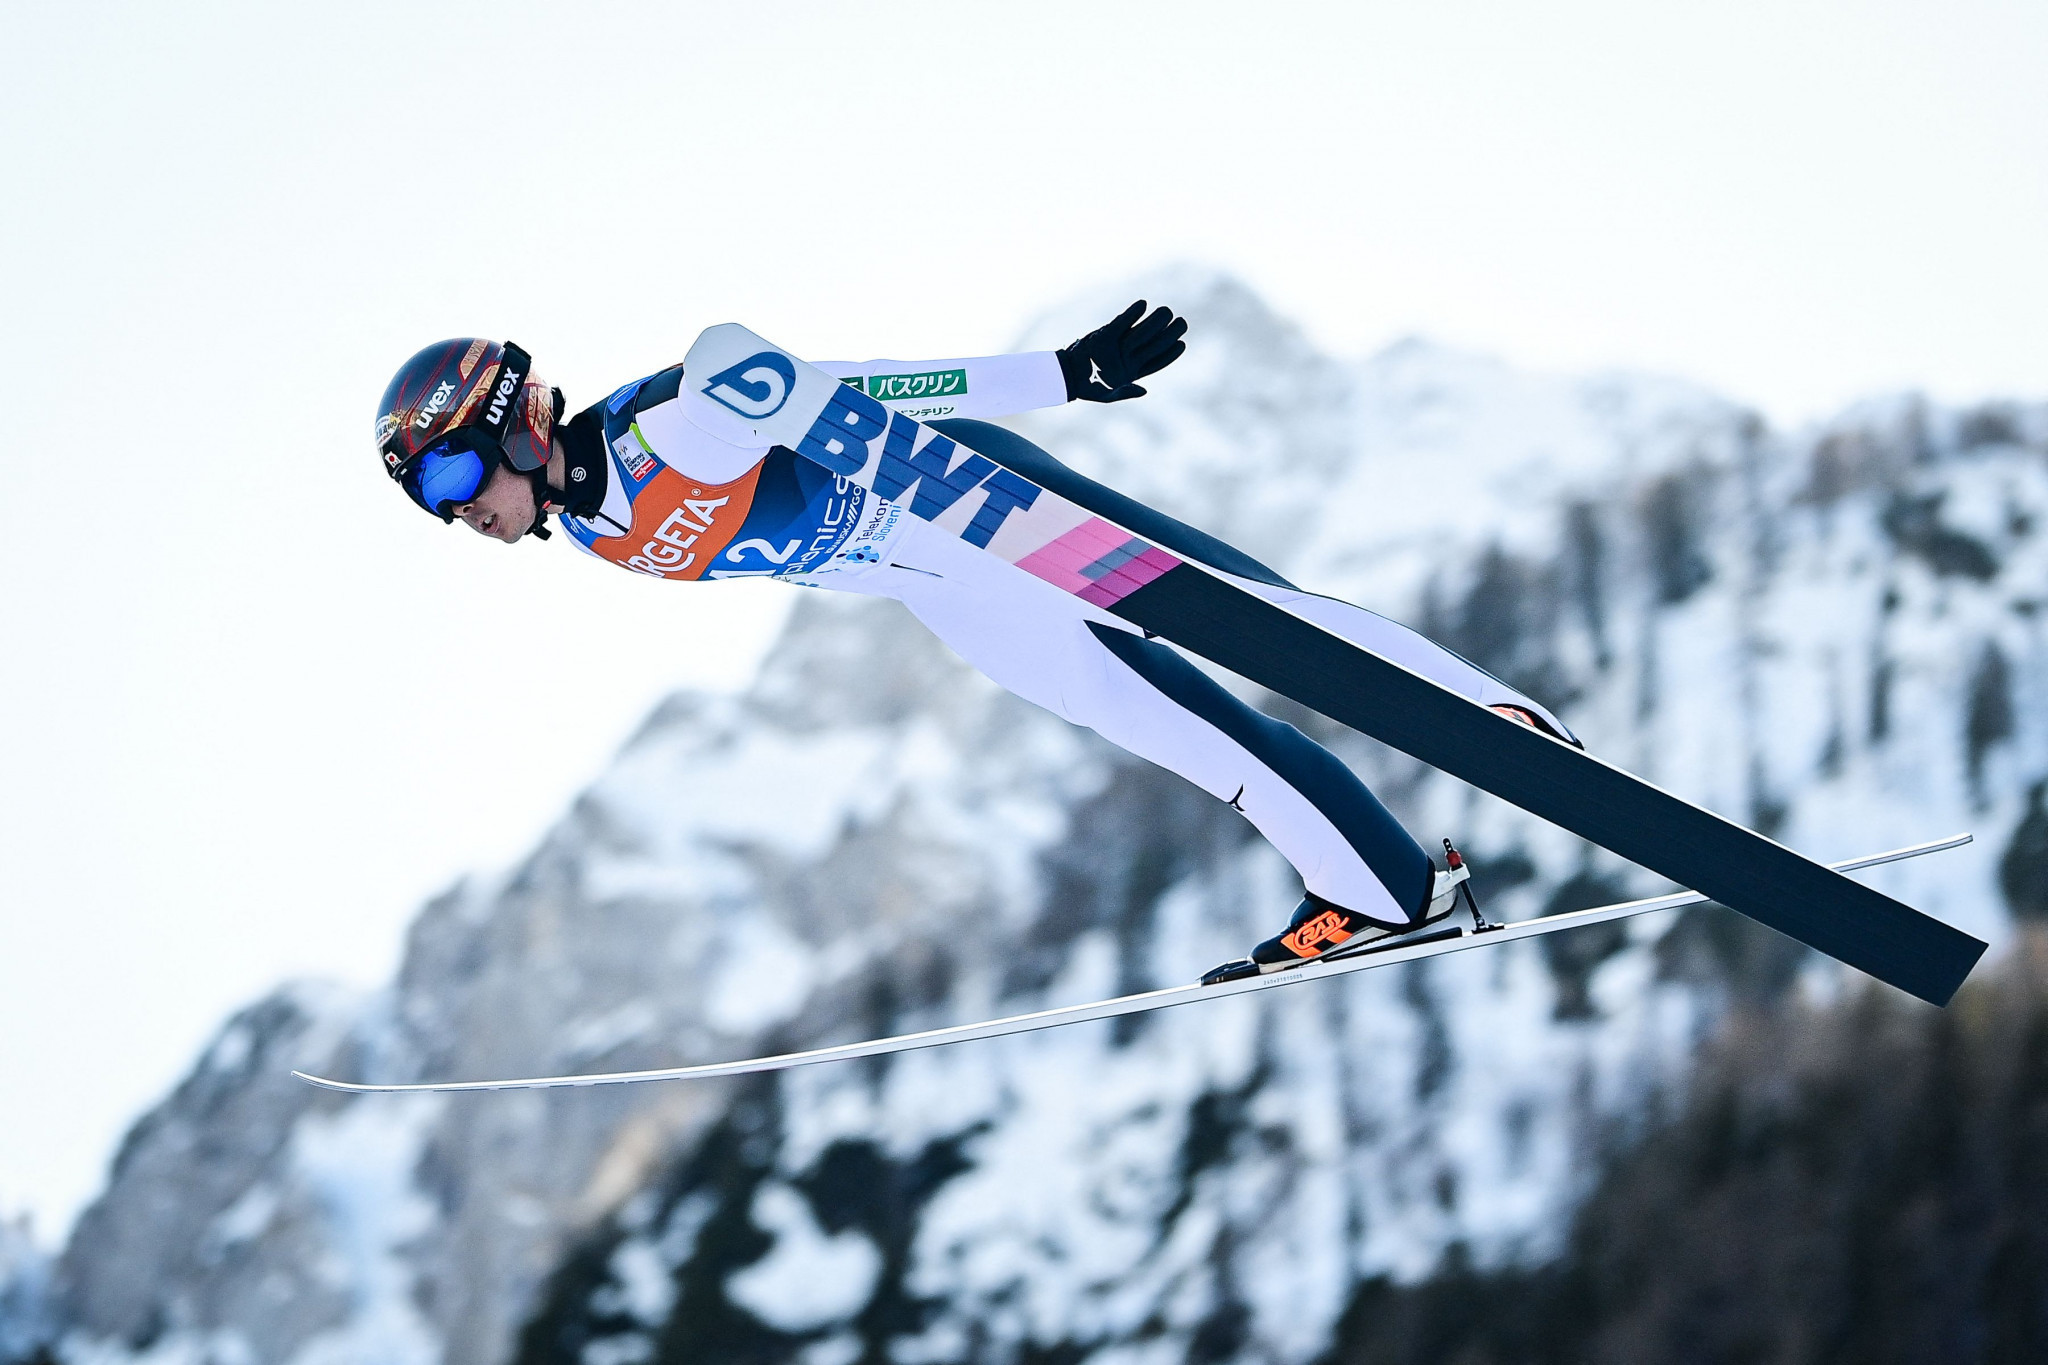 Ryōyū Kobayashi has been a podium finisher at four of the last five World Cup legs ©Getty Images